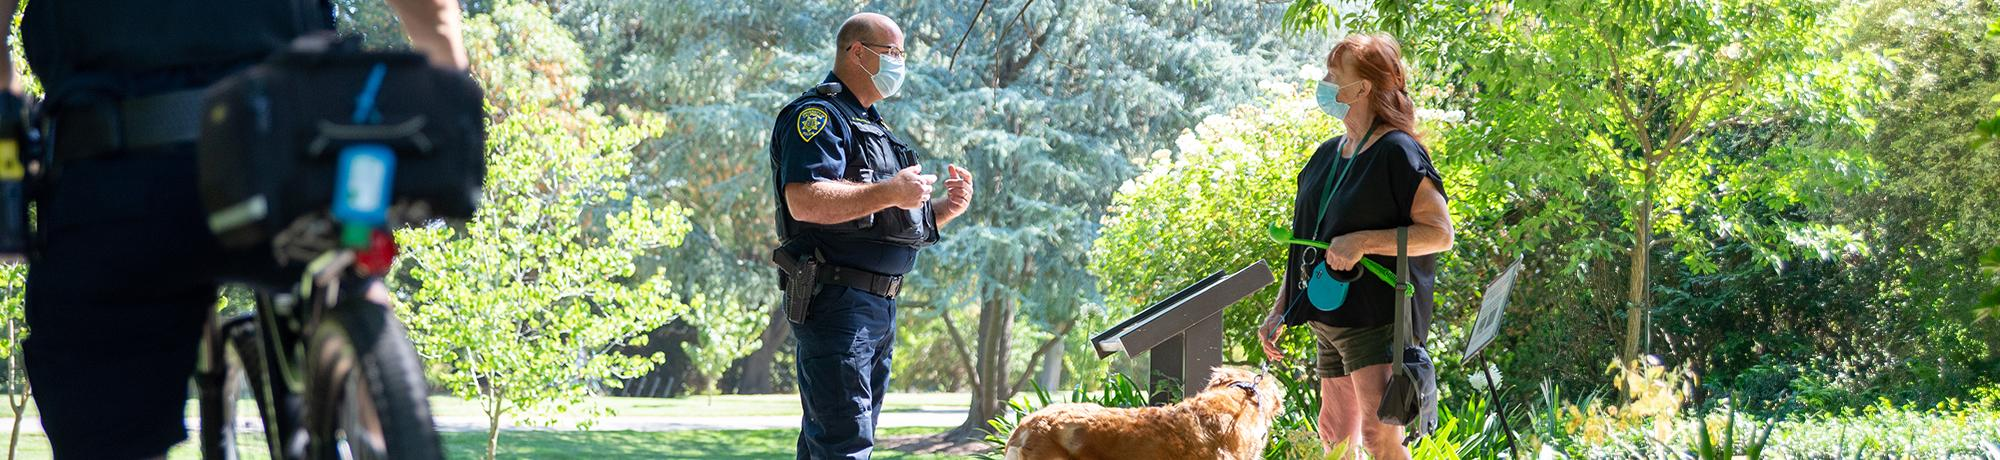 Officer and visitor with her dog talk in the arboretum while wearing face coverings